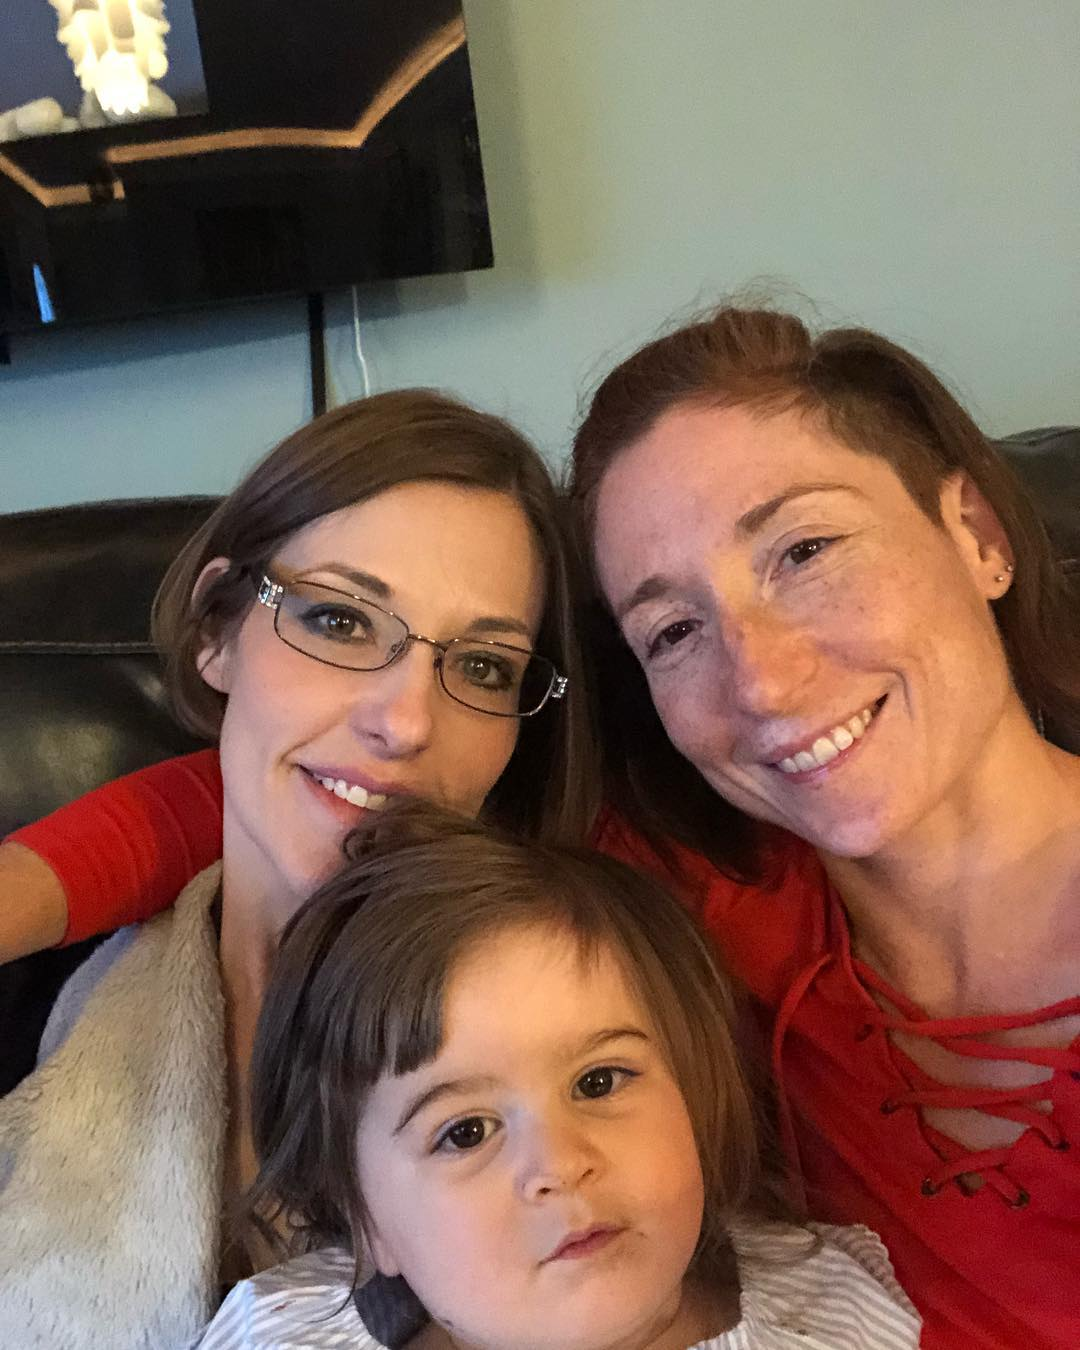 Me and Adaline with my sister, Rebecca. We got to celebrate her graduation from community college during our trip to Kansas.